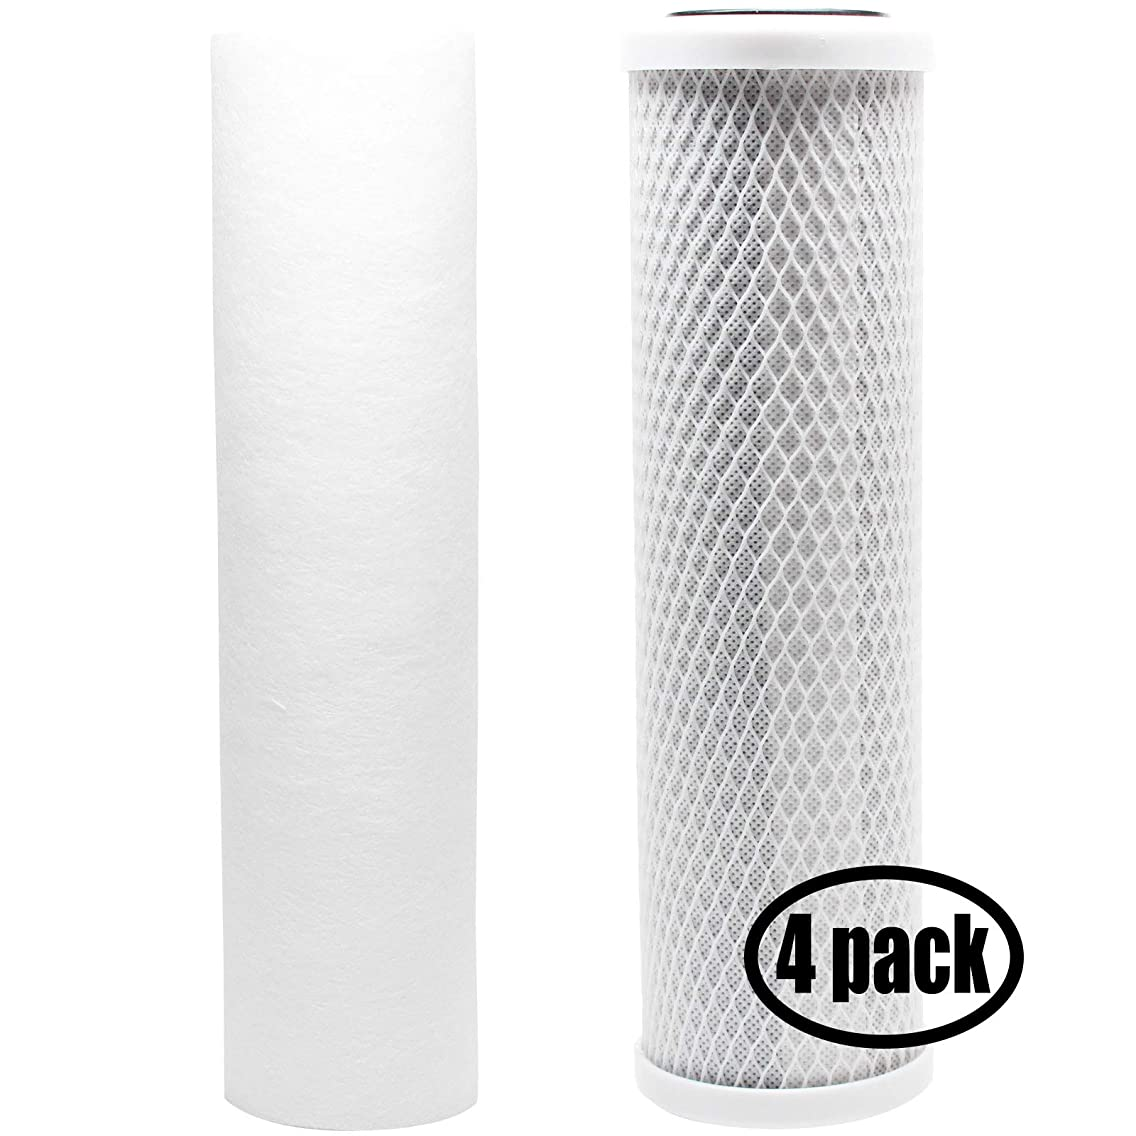 4-Pack Replacement Filter Kit for Hydo Logic HL# 31040 RO System - Includes Carbon Block Filter & PP Sediment Filter - Denali Pure Brand